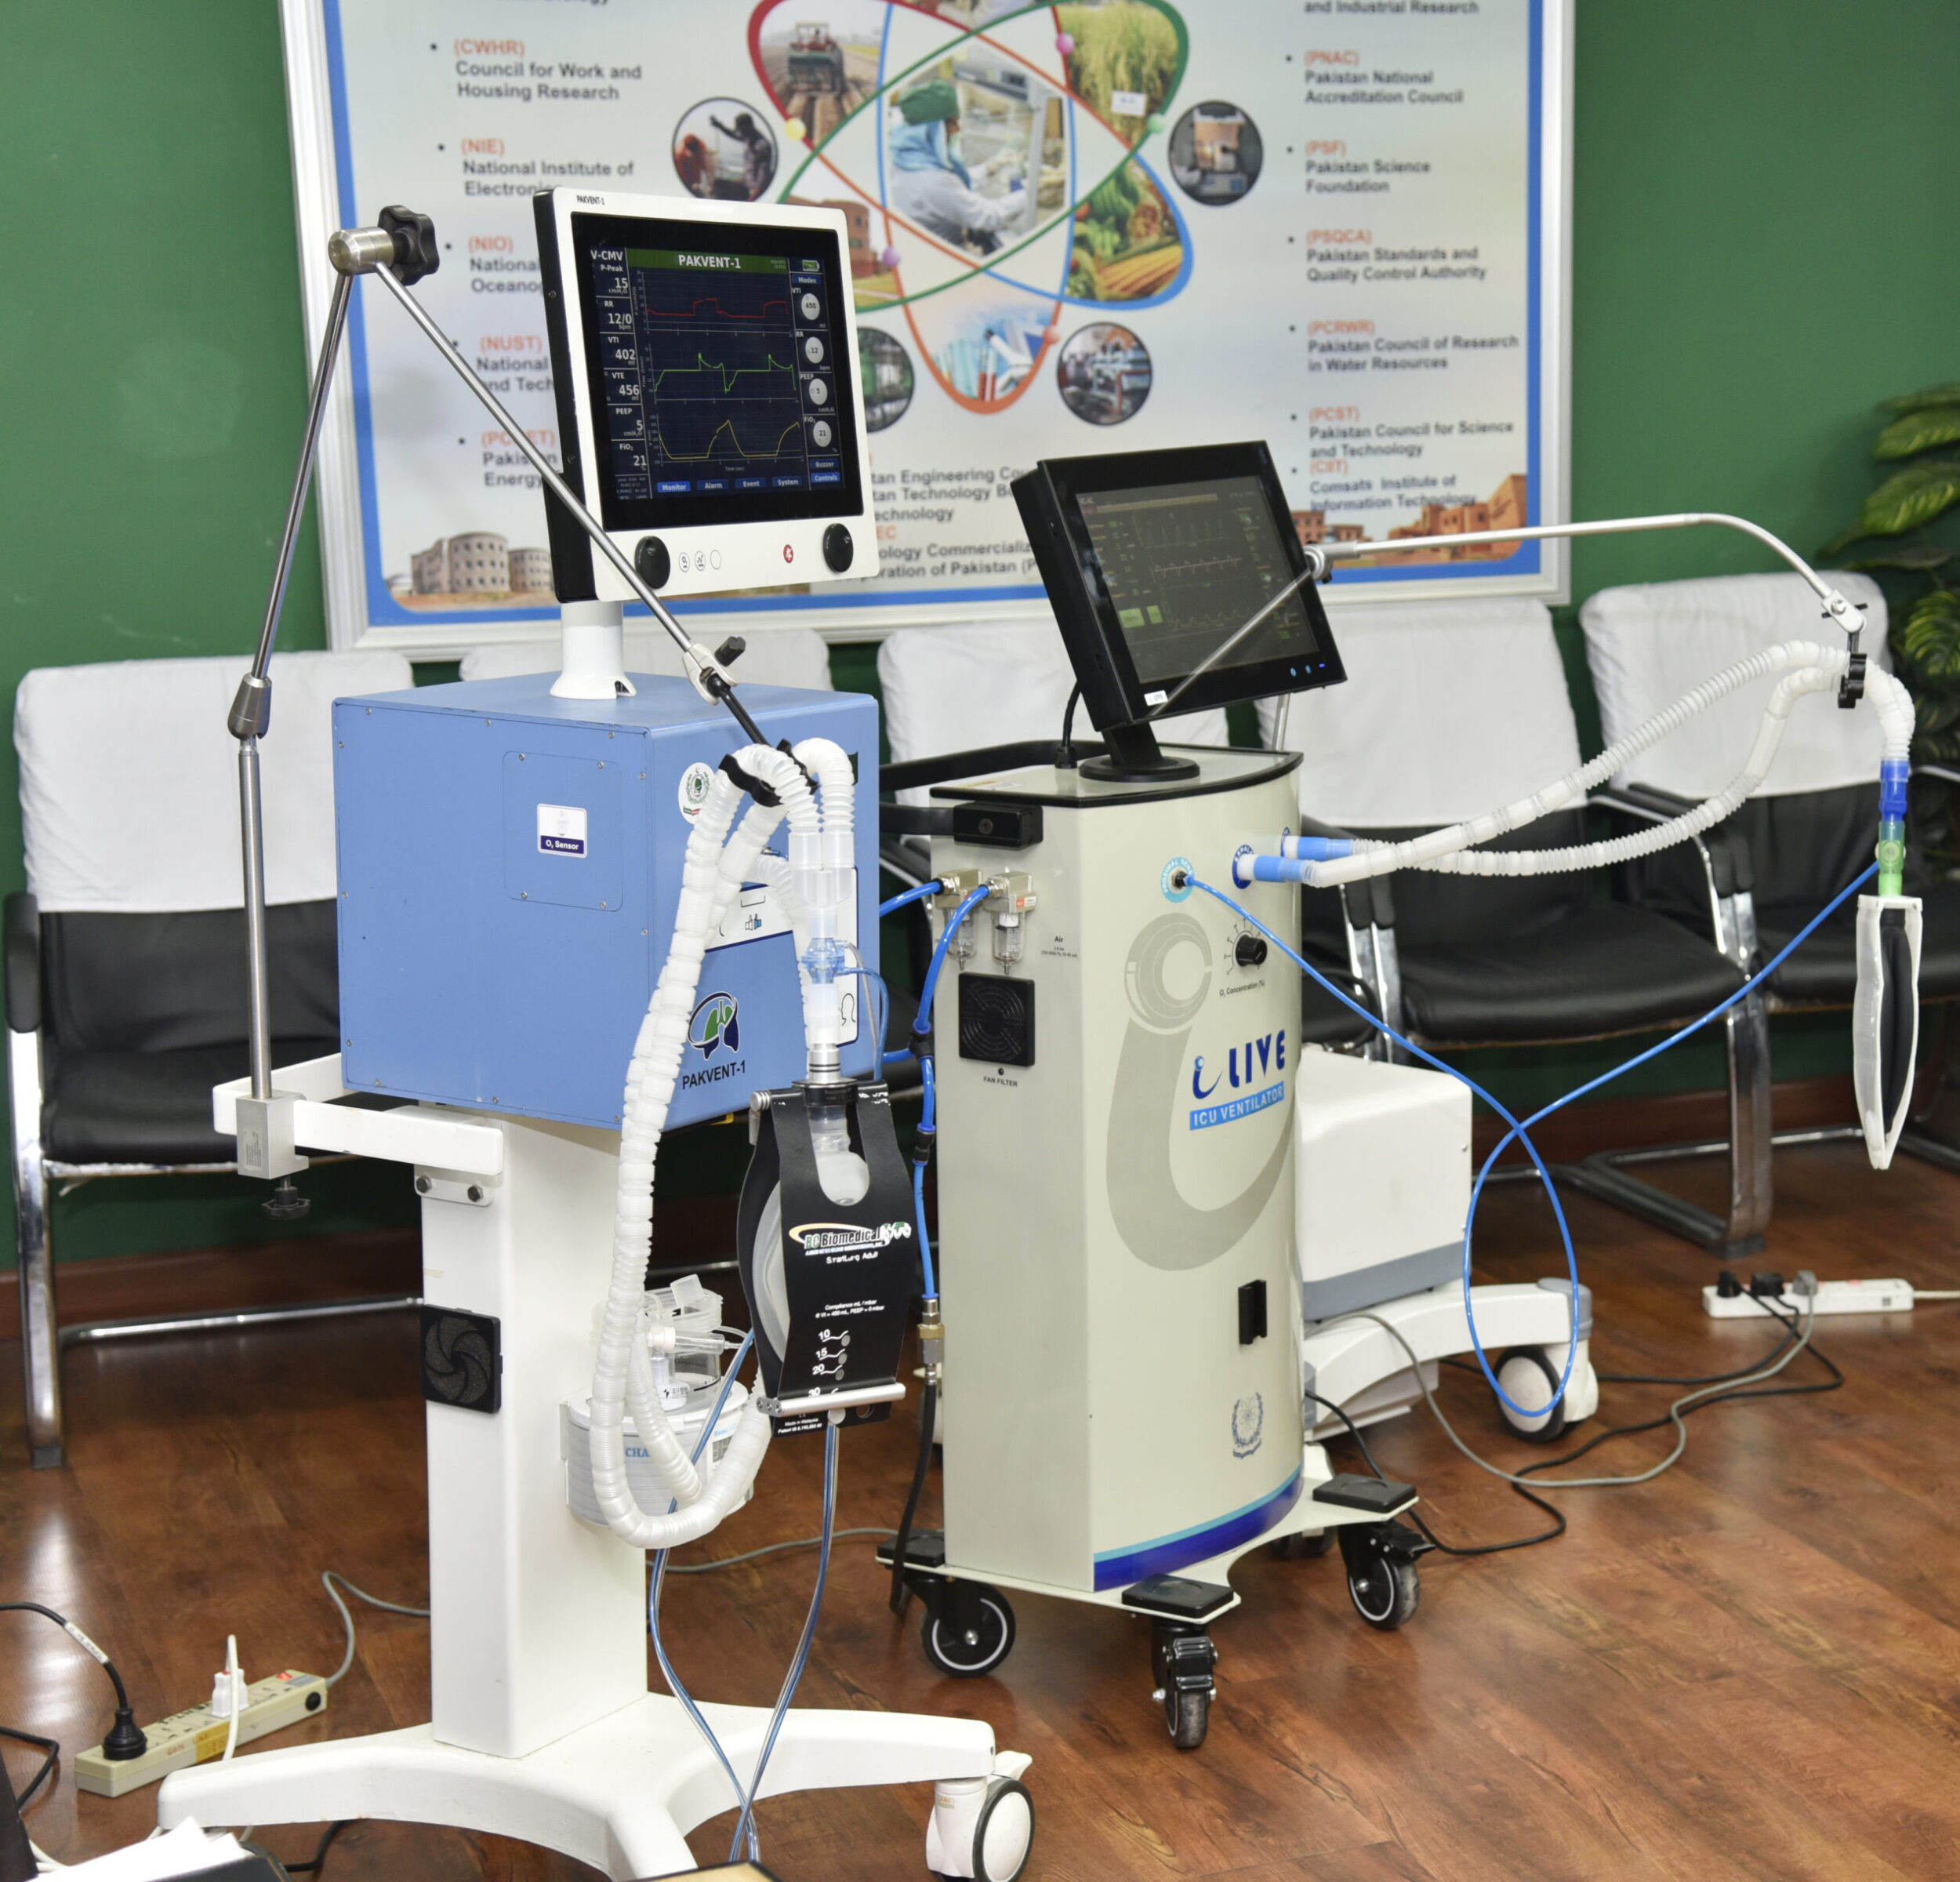 Figure 2: PakVent1 by PMO and i-live ventilator by PAEC, successfully went through the endurance tests against Acceptance Test Procedures(ATP) at PITC, PEC.